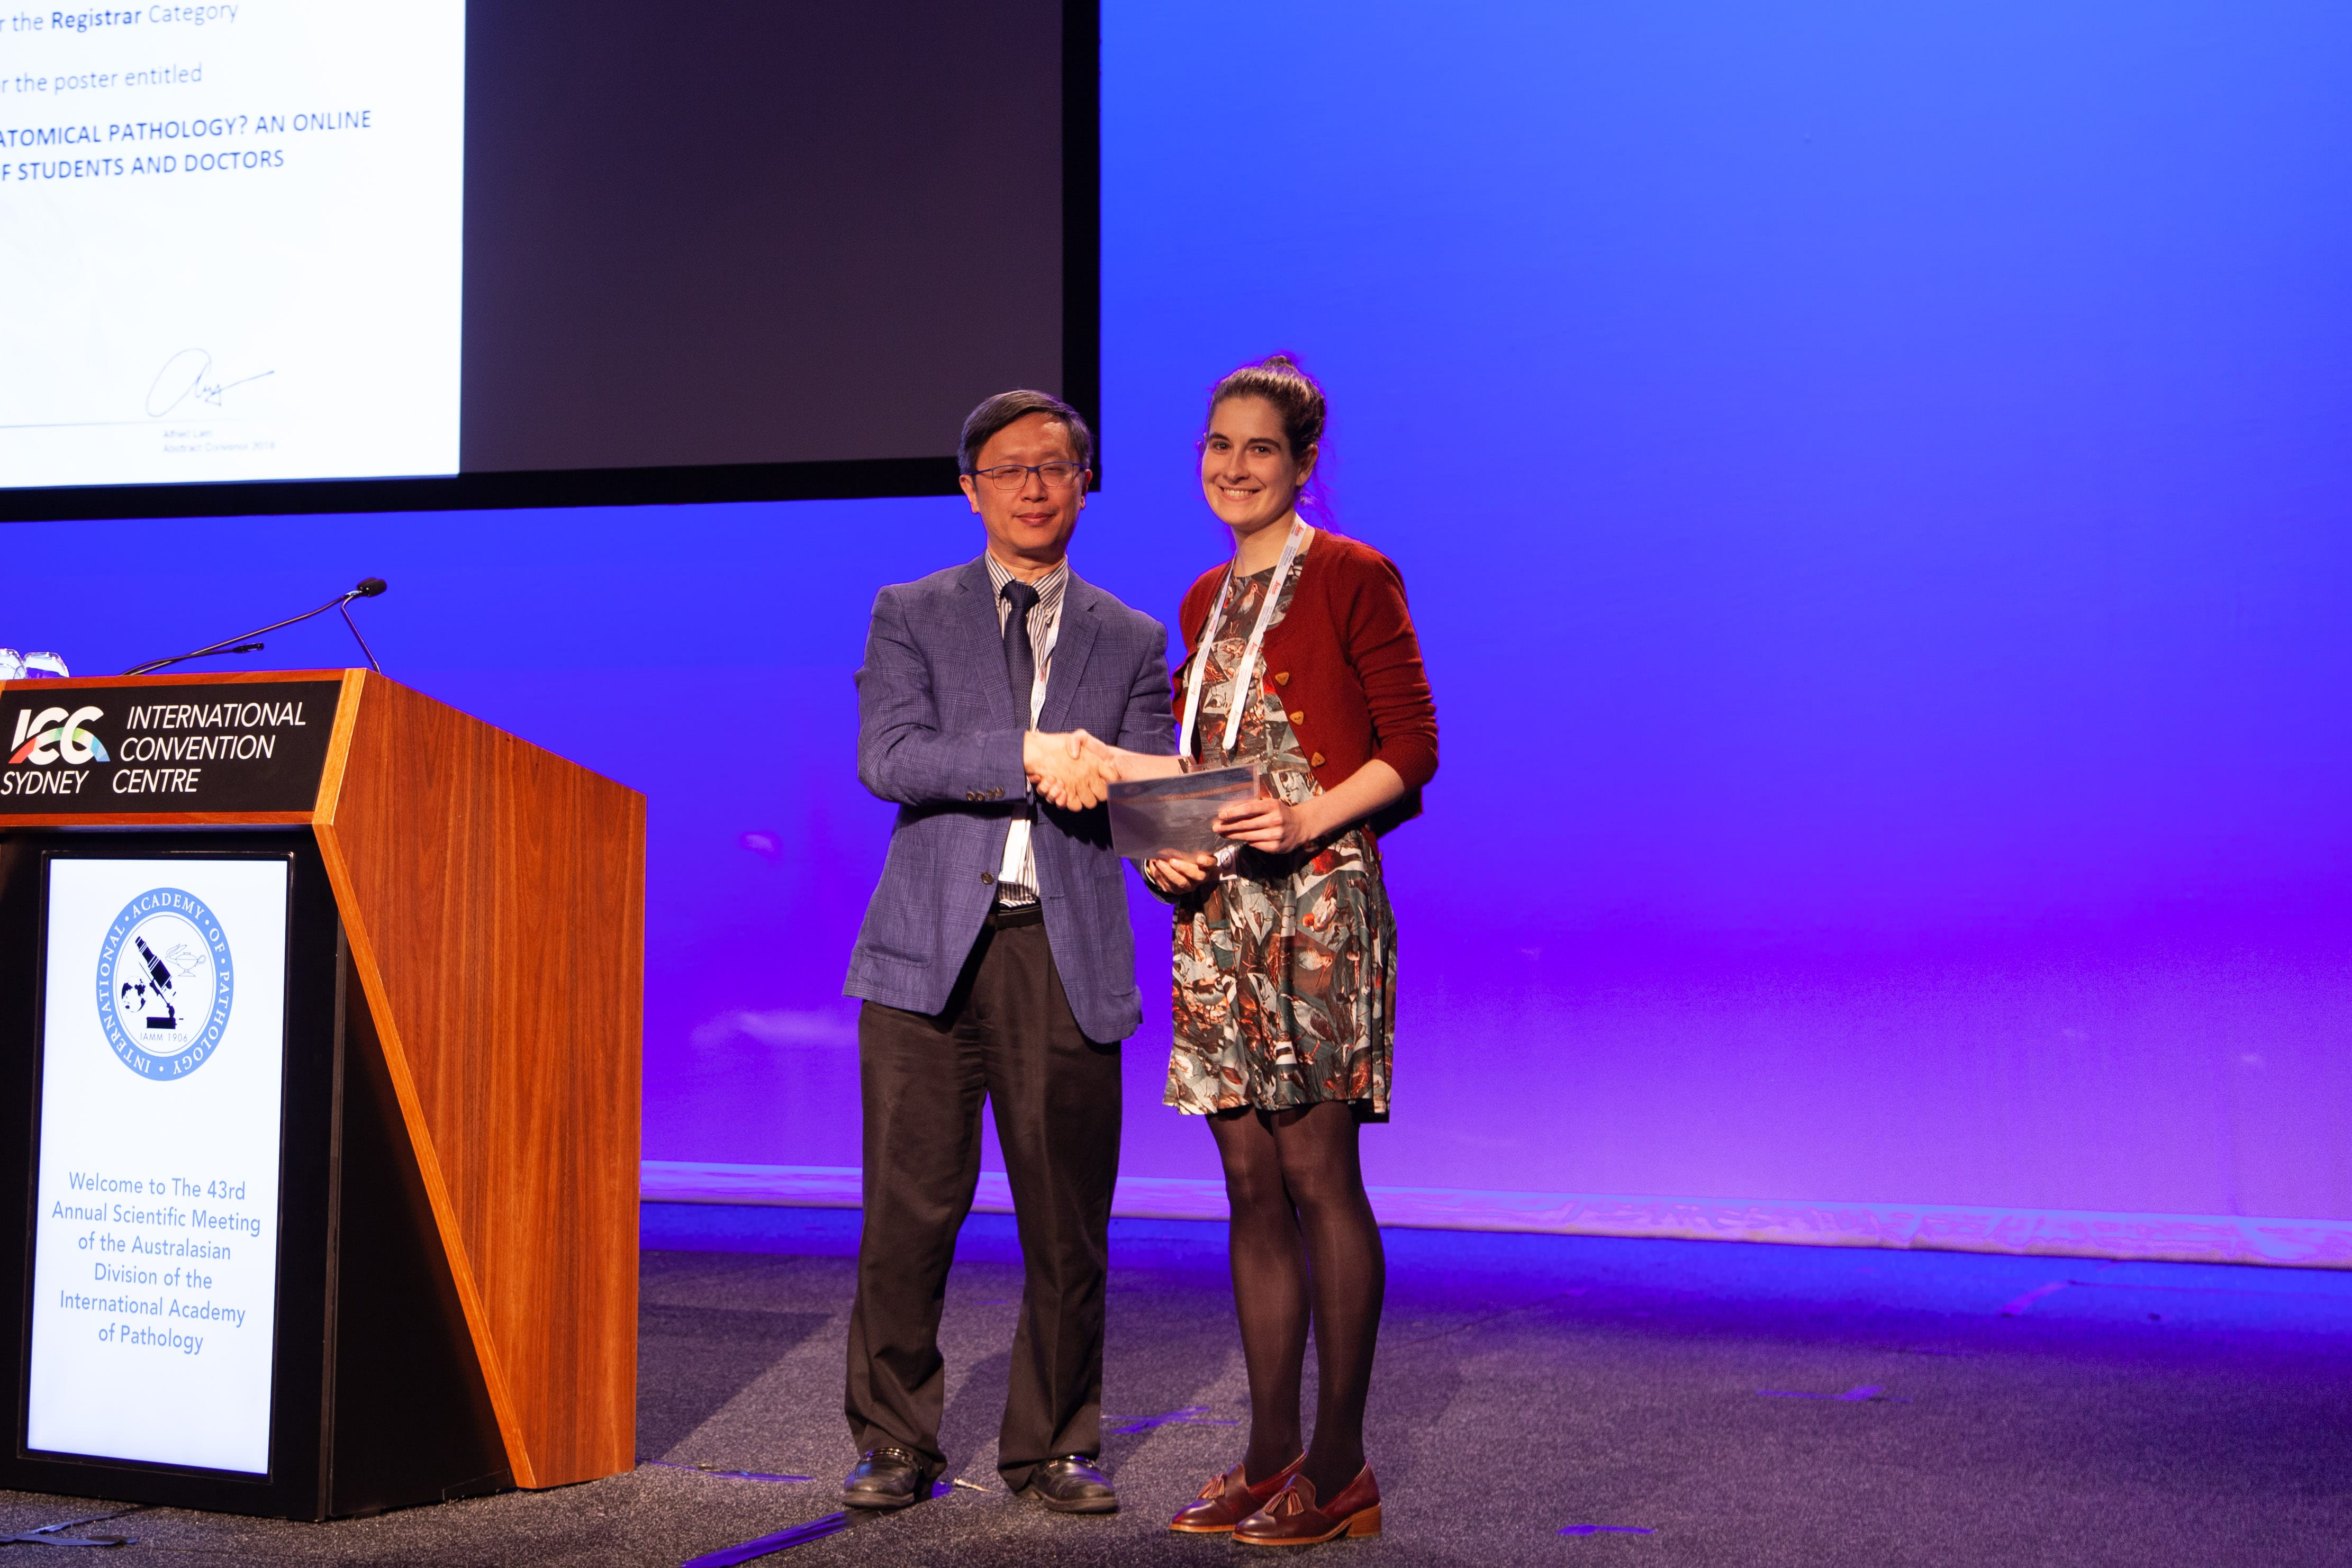 Alfred Lam presenting 2nd Commentation Prize Winner in Abstract Poster Registrar Category to Francesca Watts